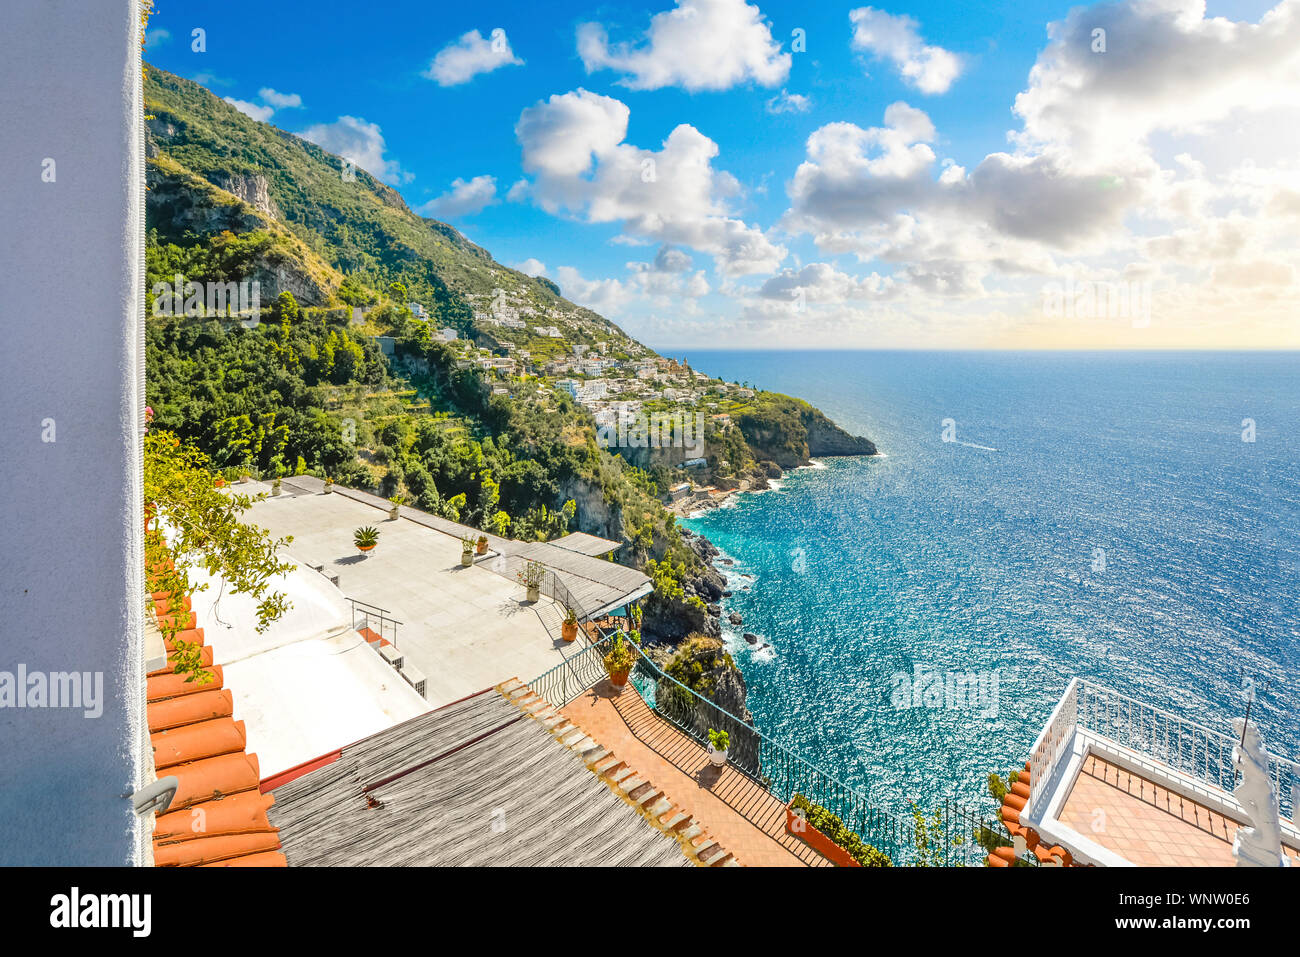 A view of the hilltop town Praiano from a terrace along the Amalfi Coast on the Italian Mediterranean on a warm summer day Stock Photo